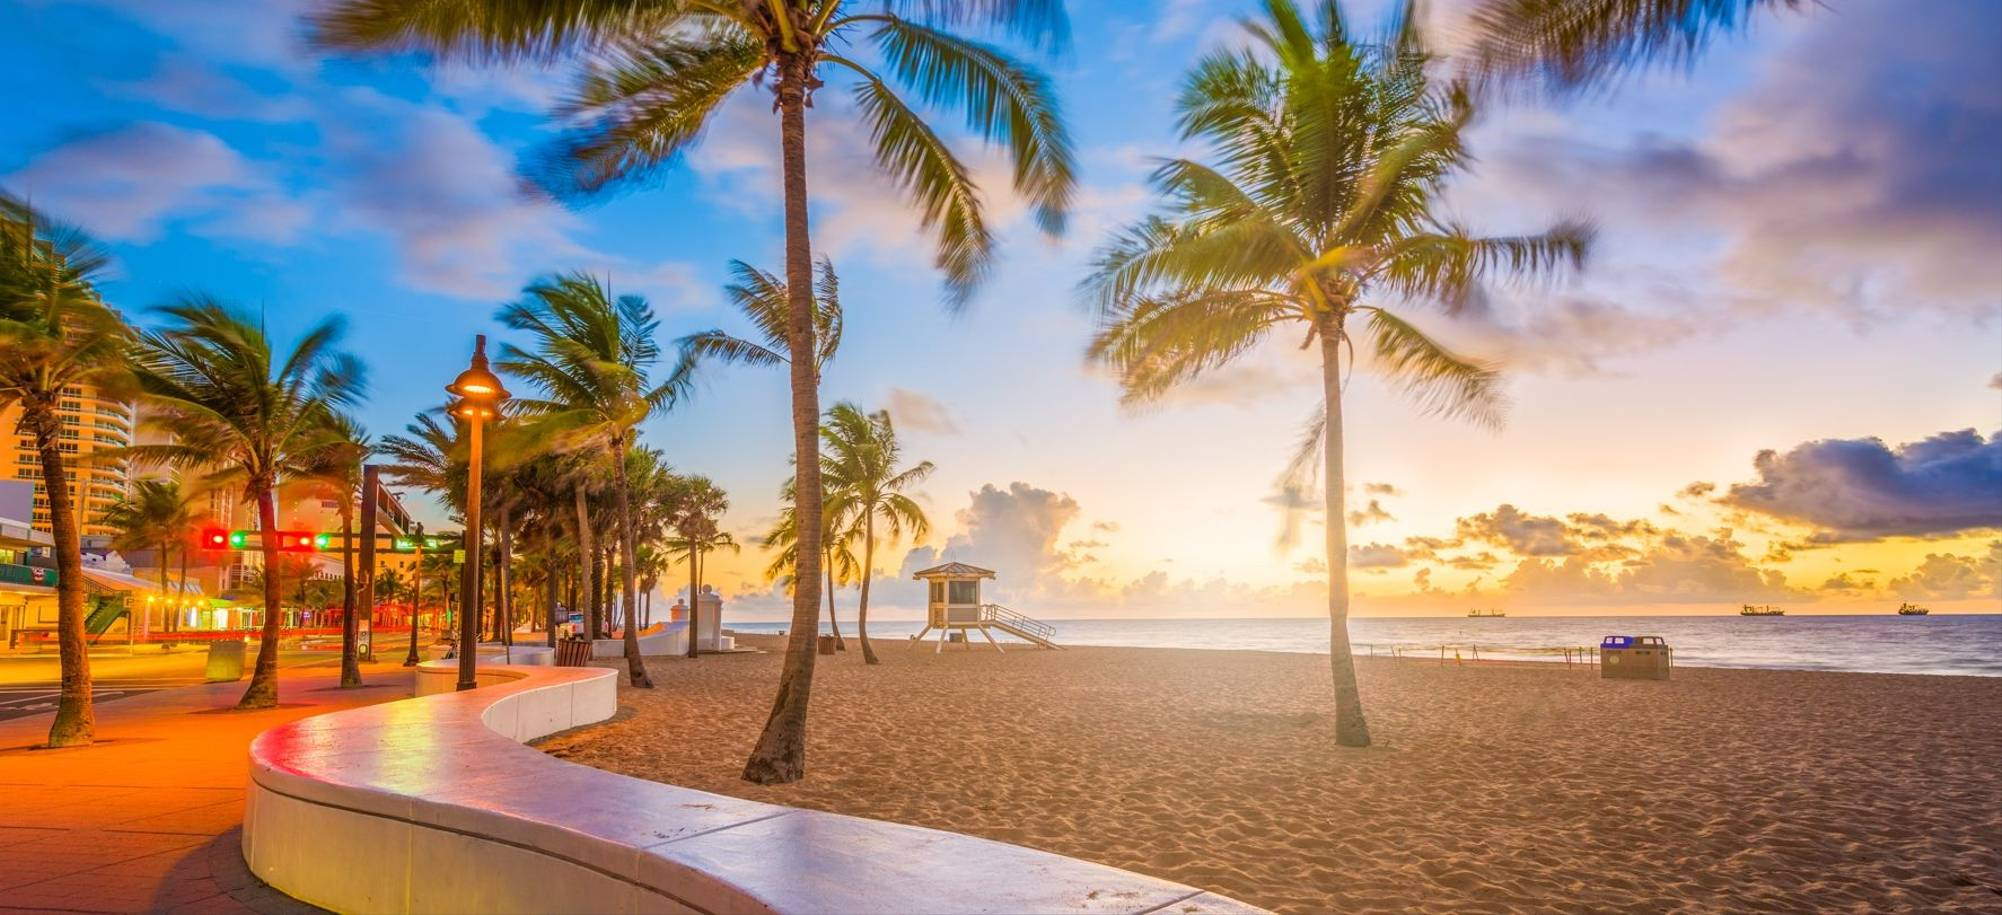 1 Day   Fort Lauderdale   Itinerary Desktop